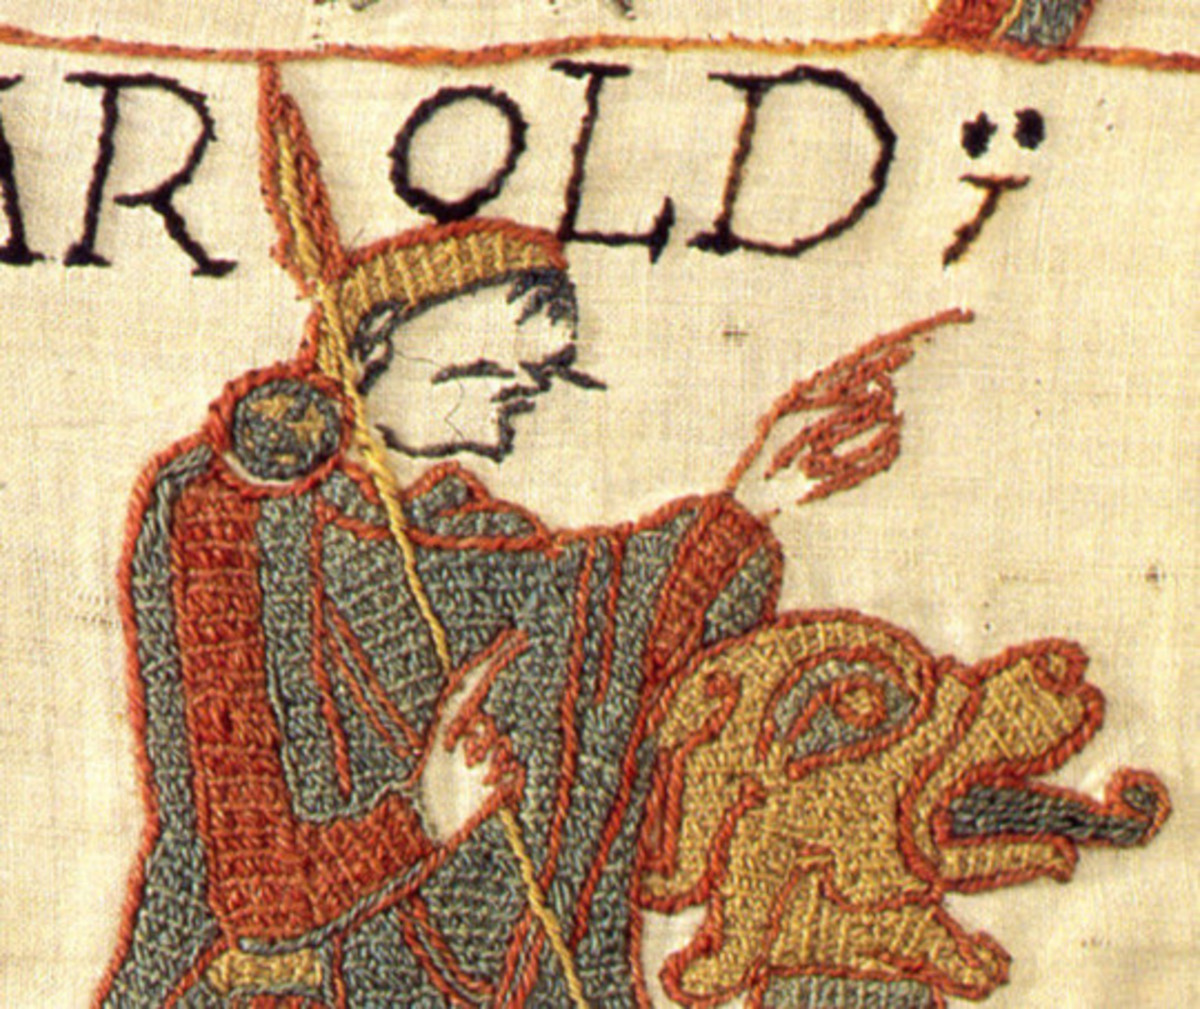 Harold with hunting hound in another scene on the Bayeux banner-tapestry